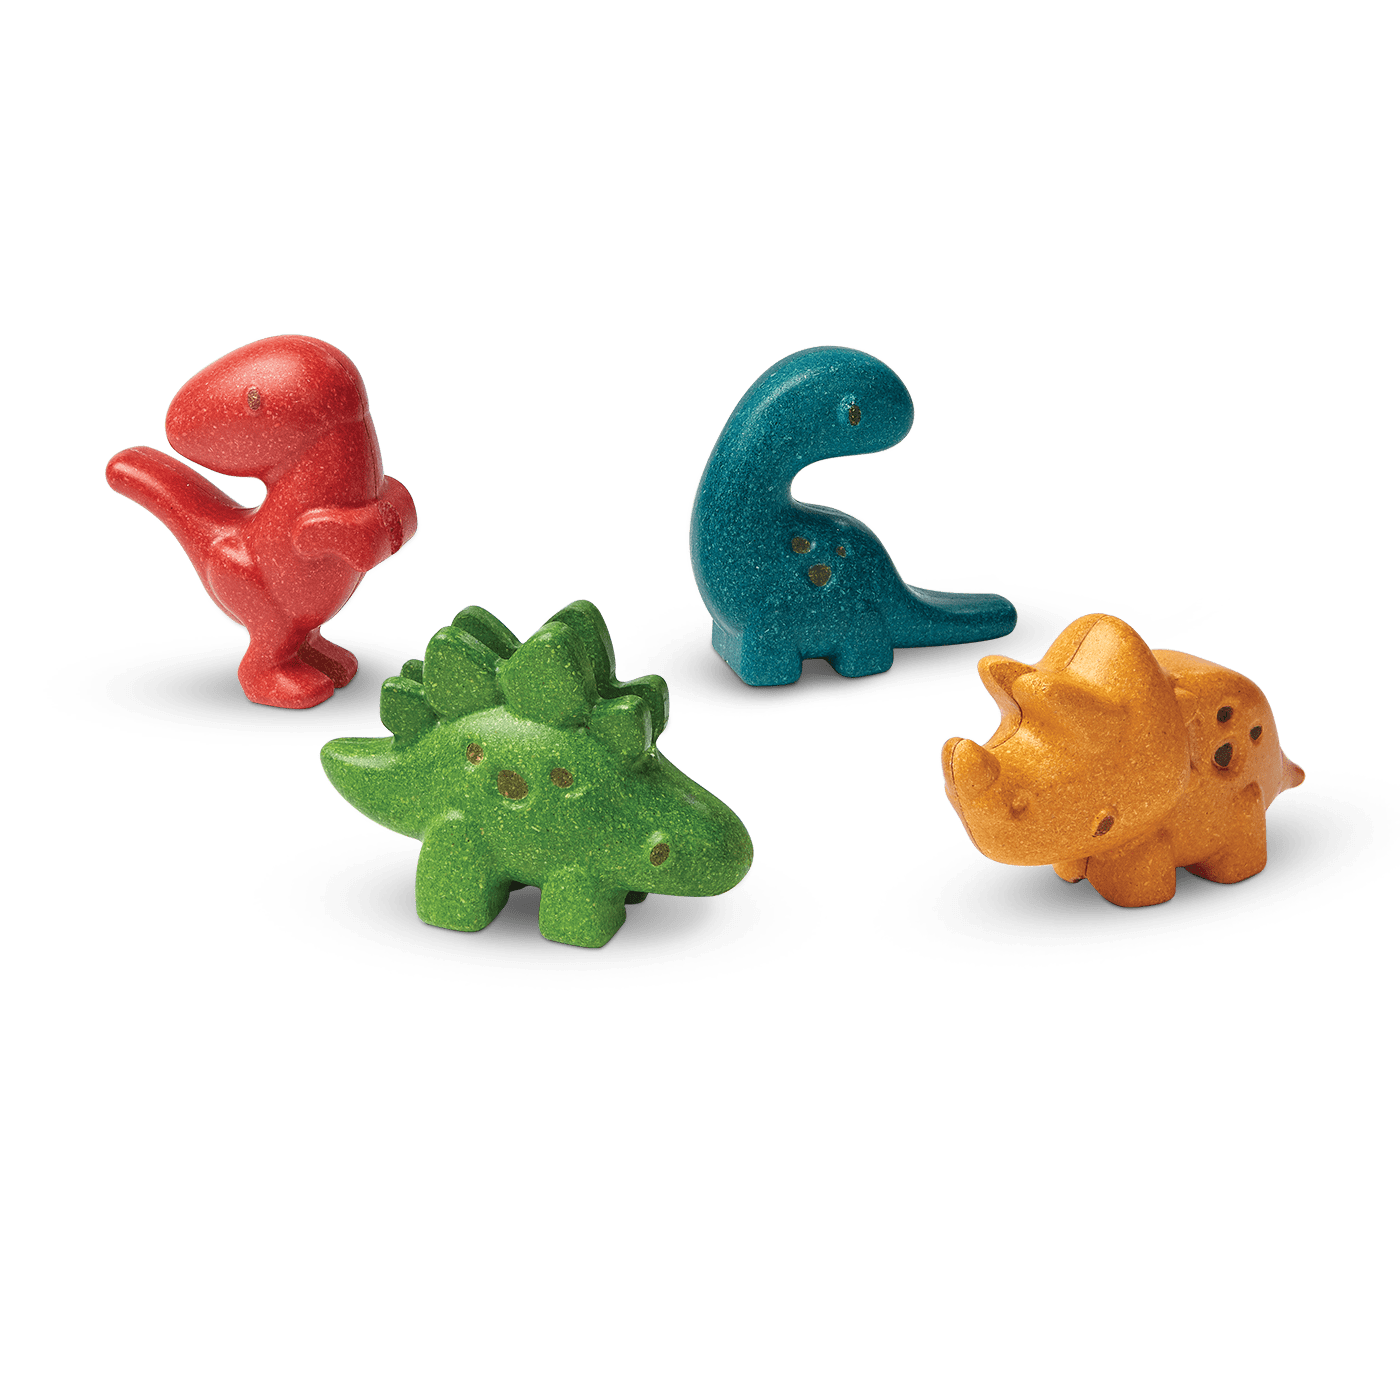 6126_PlanToys_DINO_SET_Pretend_Play_Imagination_Coordination_Creative_Language_and_Communications_Social_Emotion_12m_Wooden_toys_Education_toys_Safety_Toys_Non-toxic_0.png